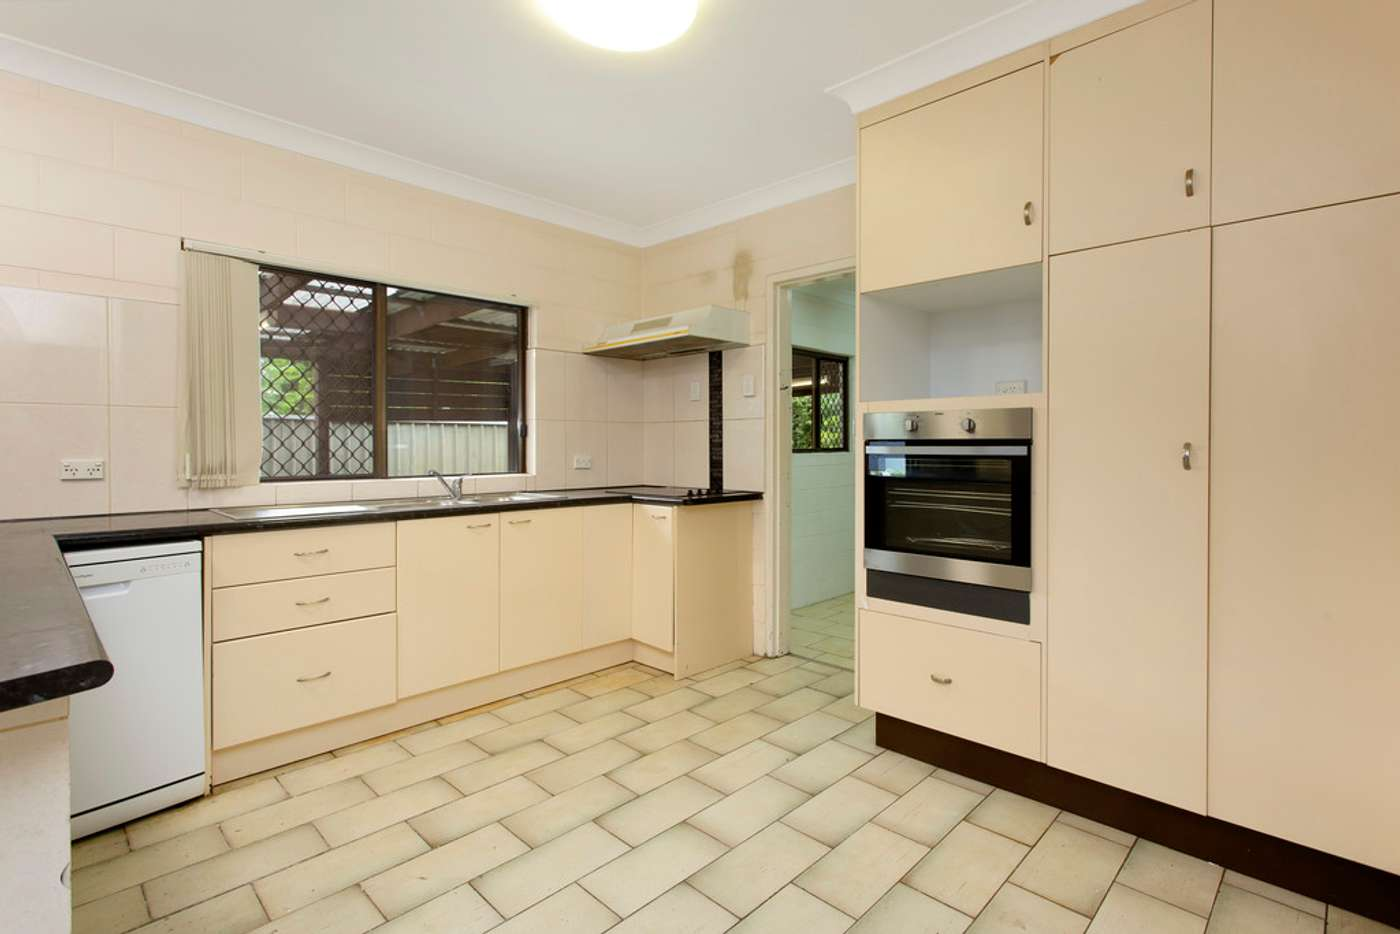 Sixth view of Homely house listing, 1 CUPANIA COURT, Annandale QLD 4814